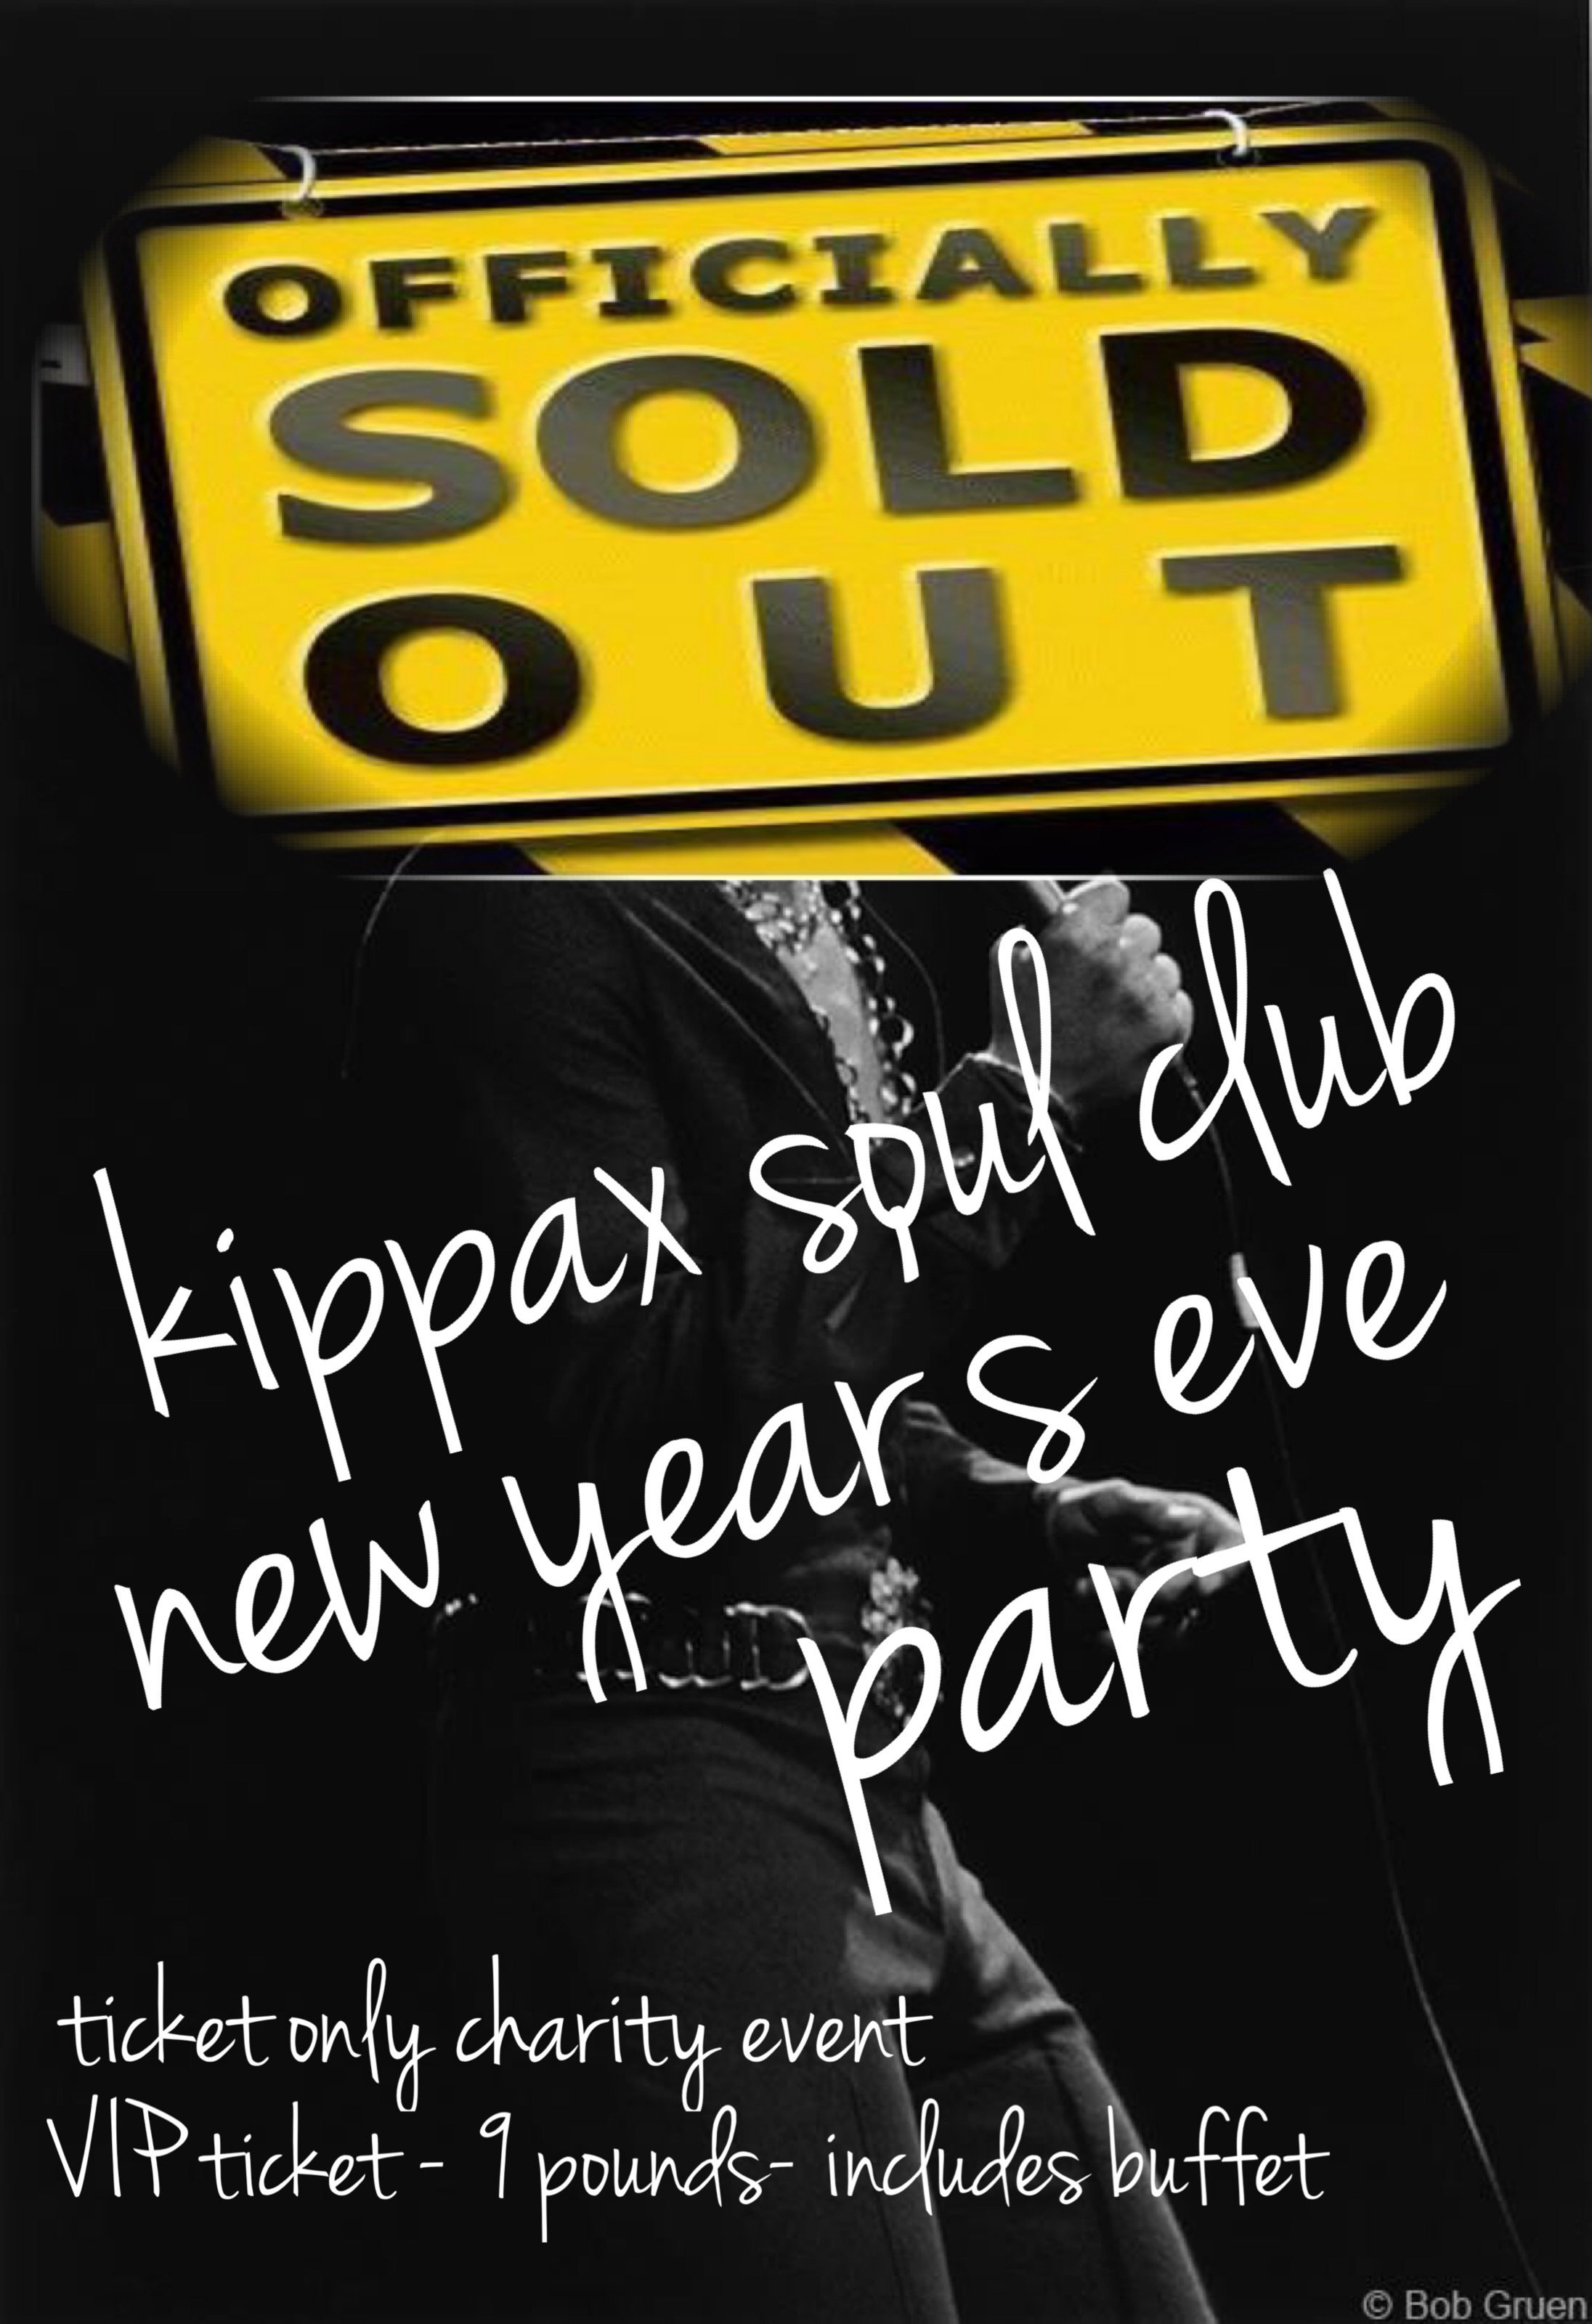 Kippax Soul Club Nye Party  Sorry Now Sold Out flyer